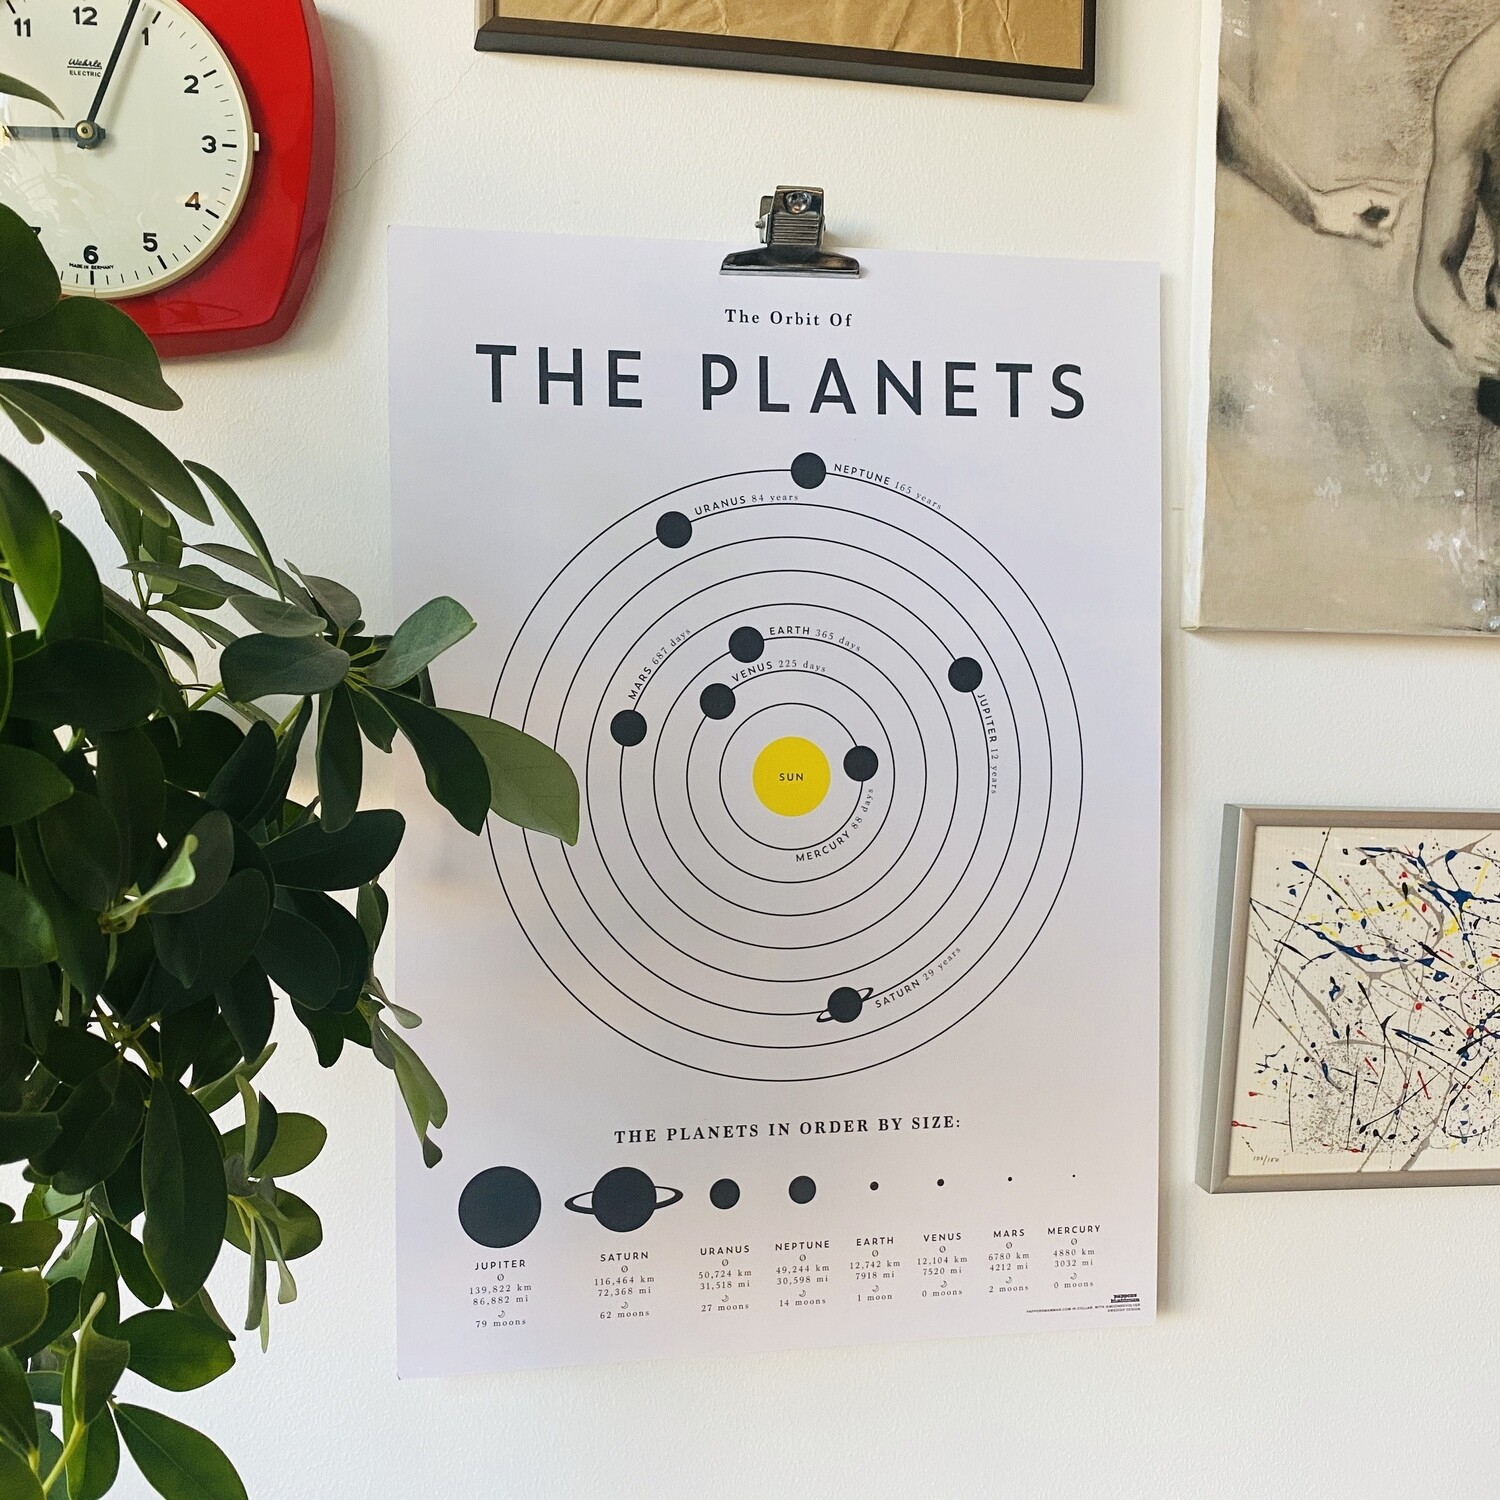 THE ORBIT OF THE PLANETS